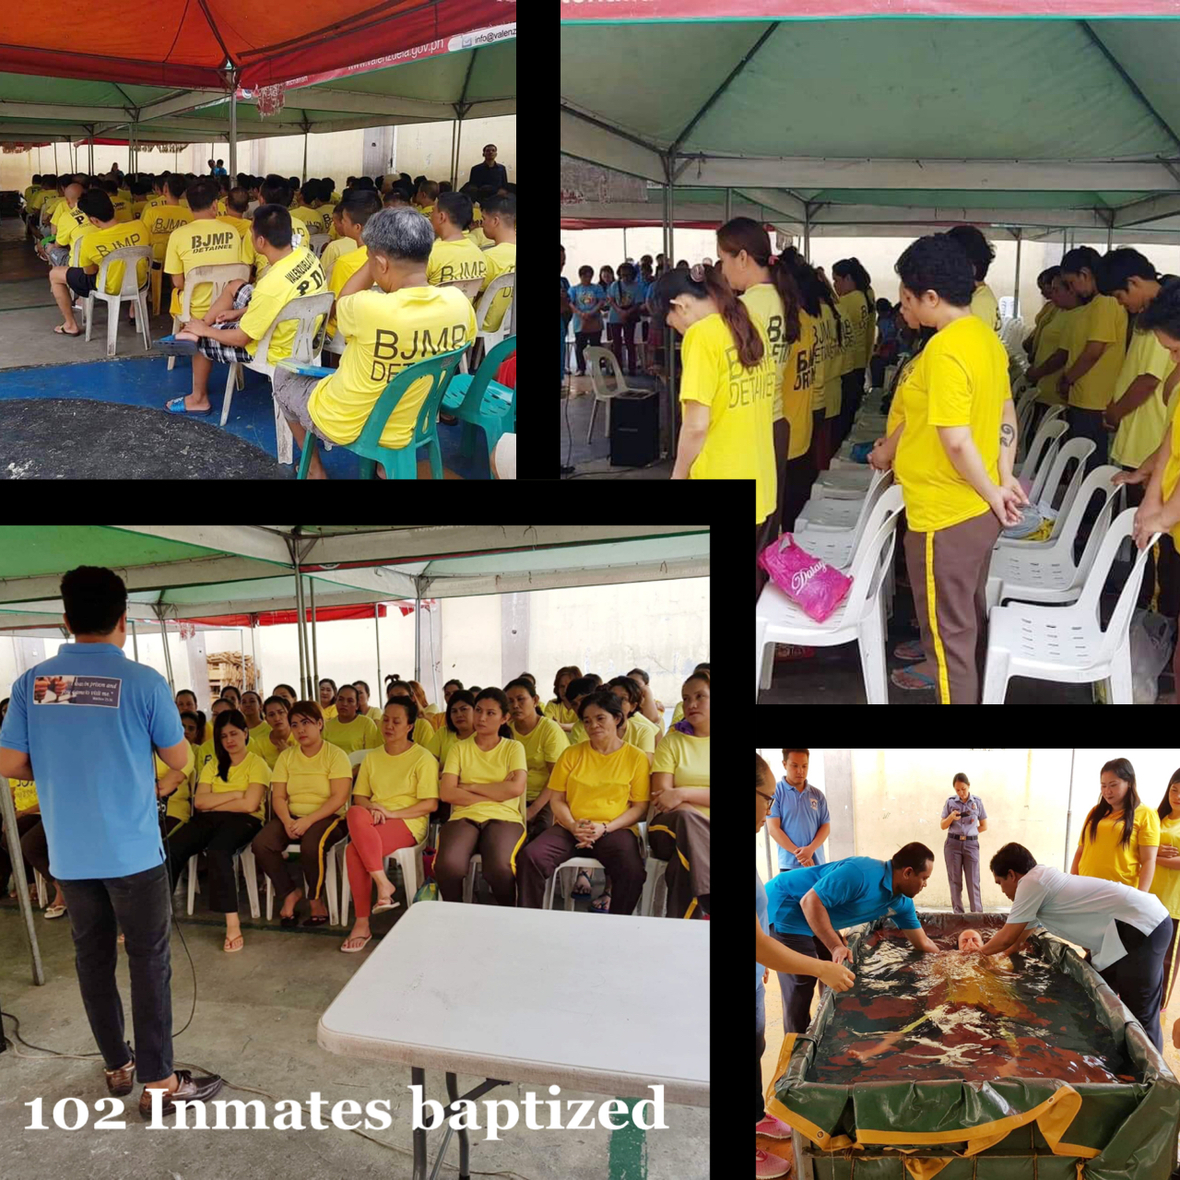 A total of 102 Inmates were baptized in the Valenzuela City Jail as of December 2018